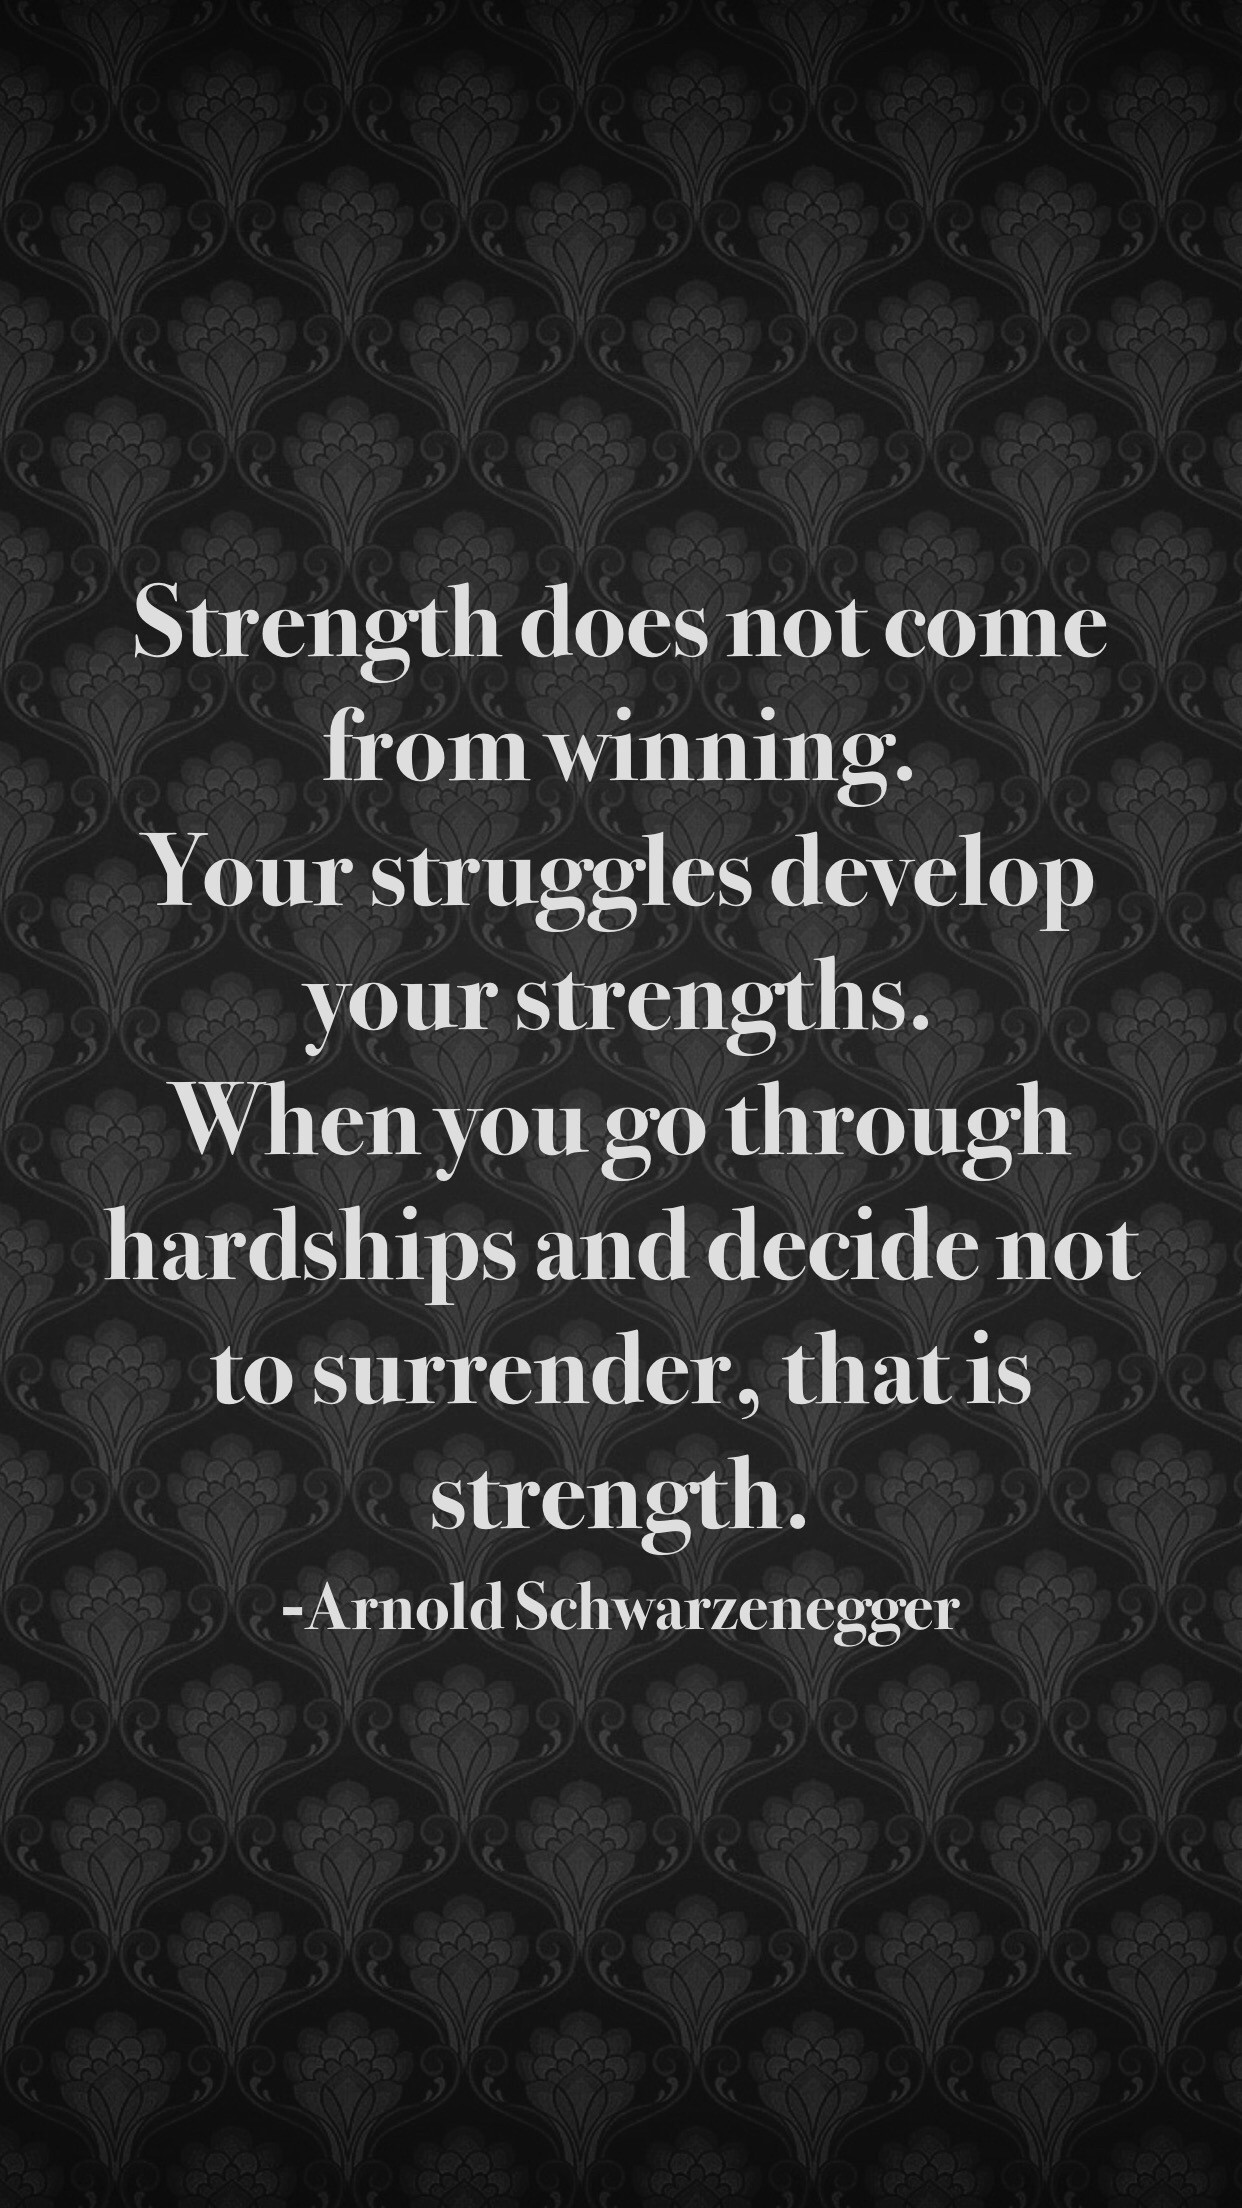 [image] You gain strength from struggle